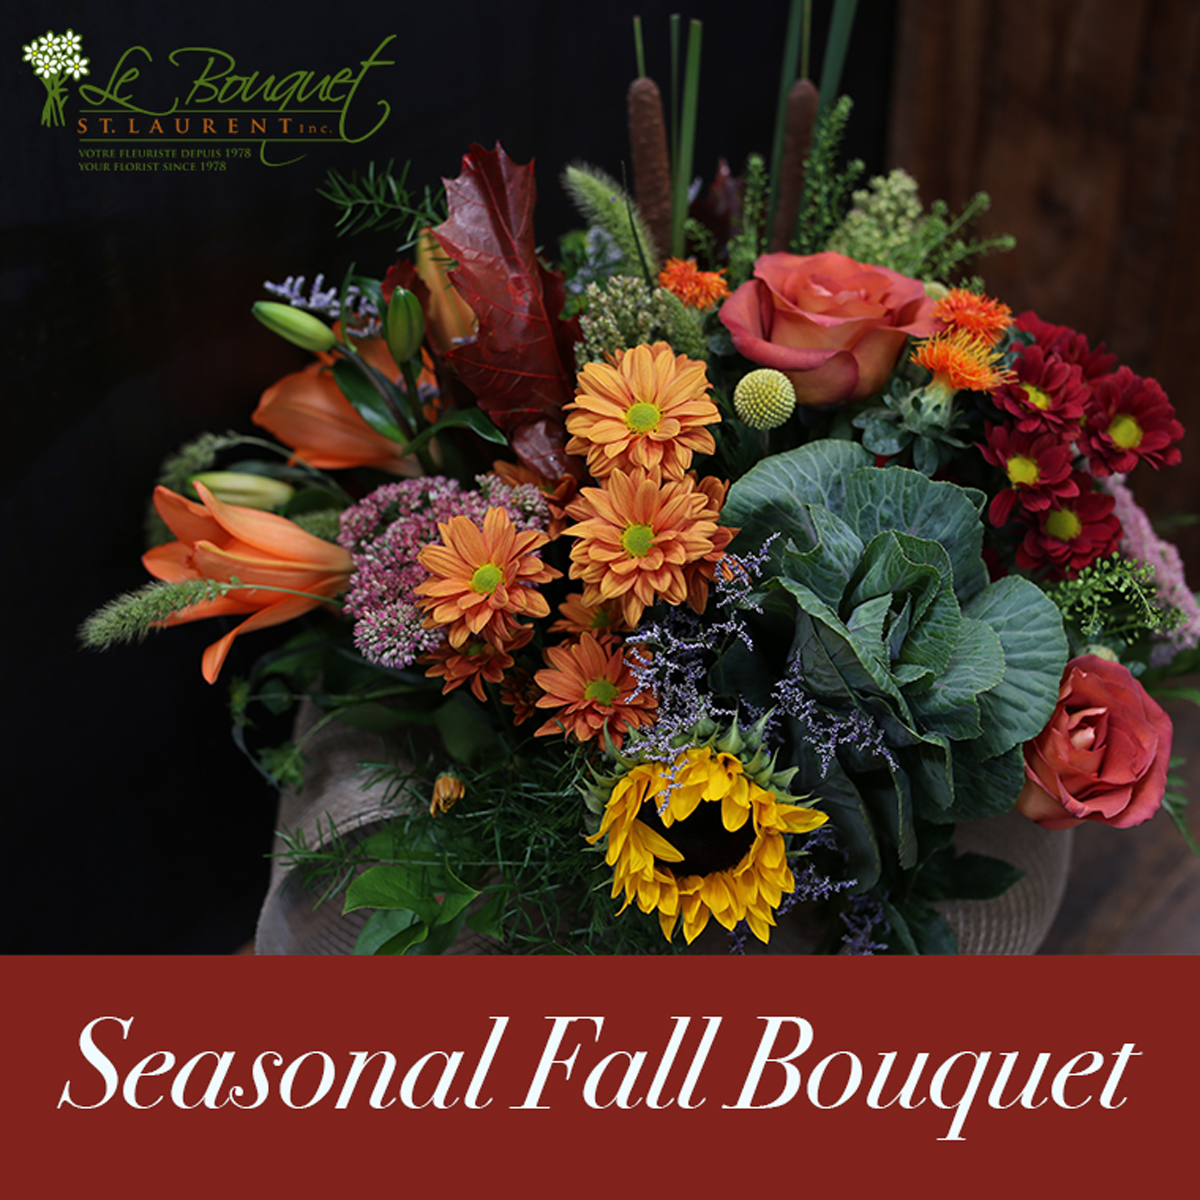 Montreal Flower Delivery service Le Bouquet seasonal fall bouquet